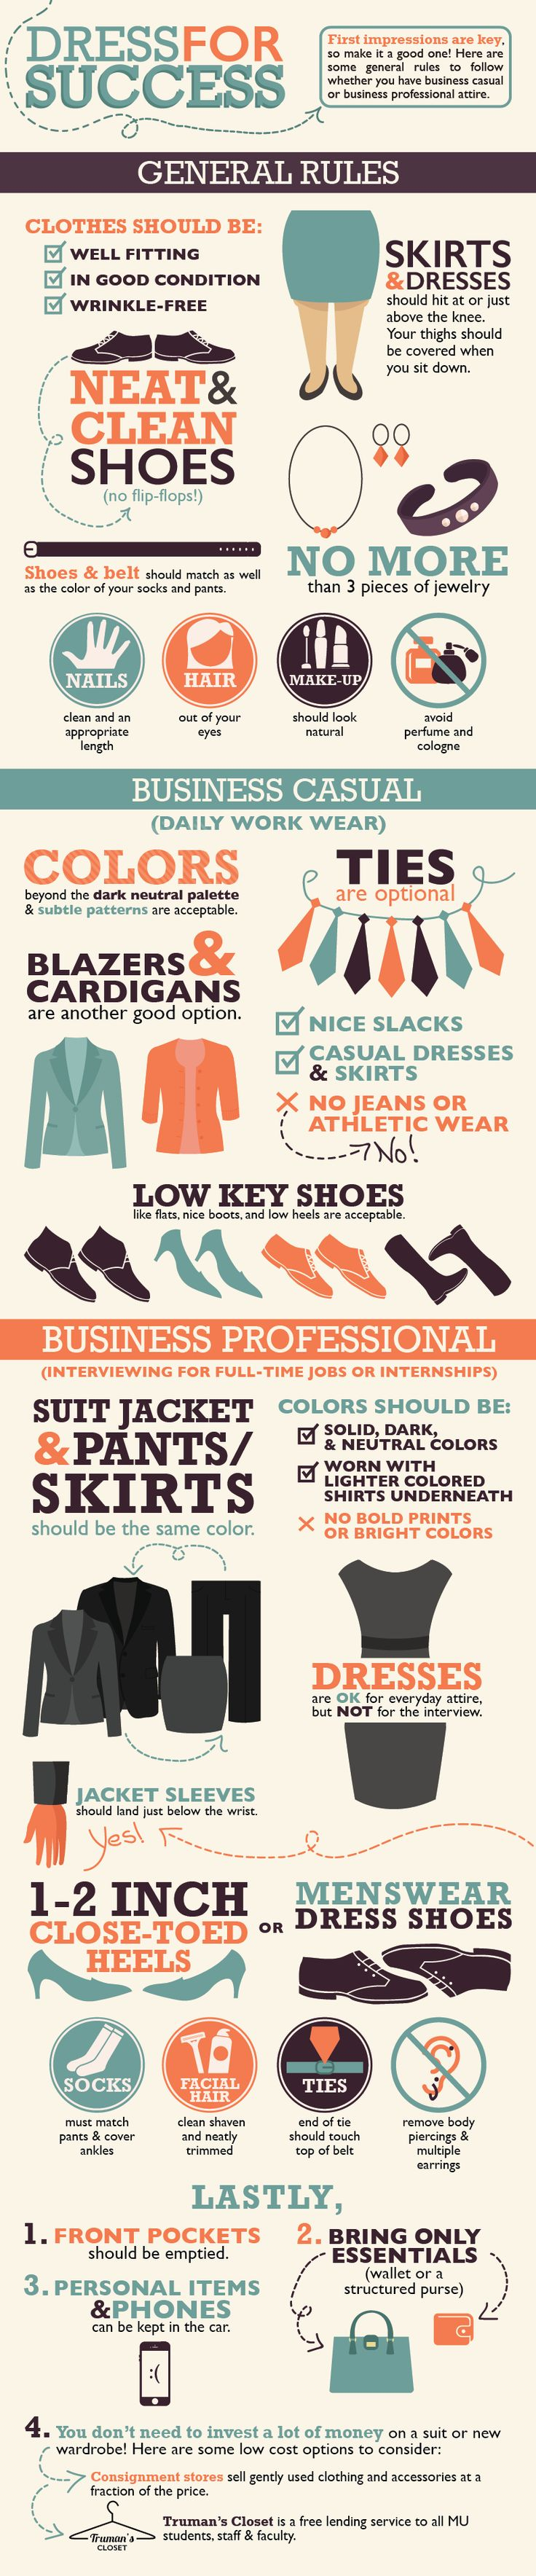 What you need to know about Business Casual and Business Professional Attire.